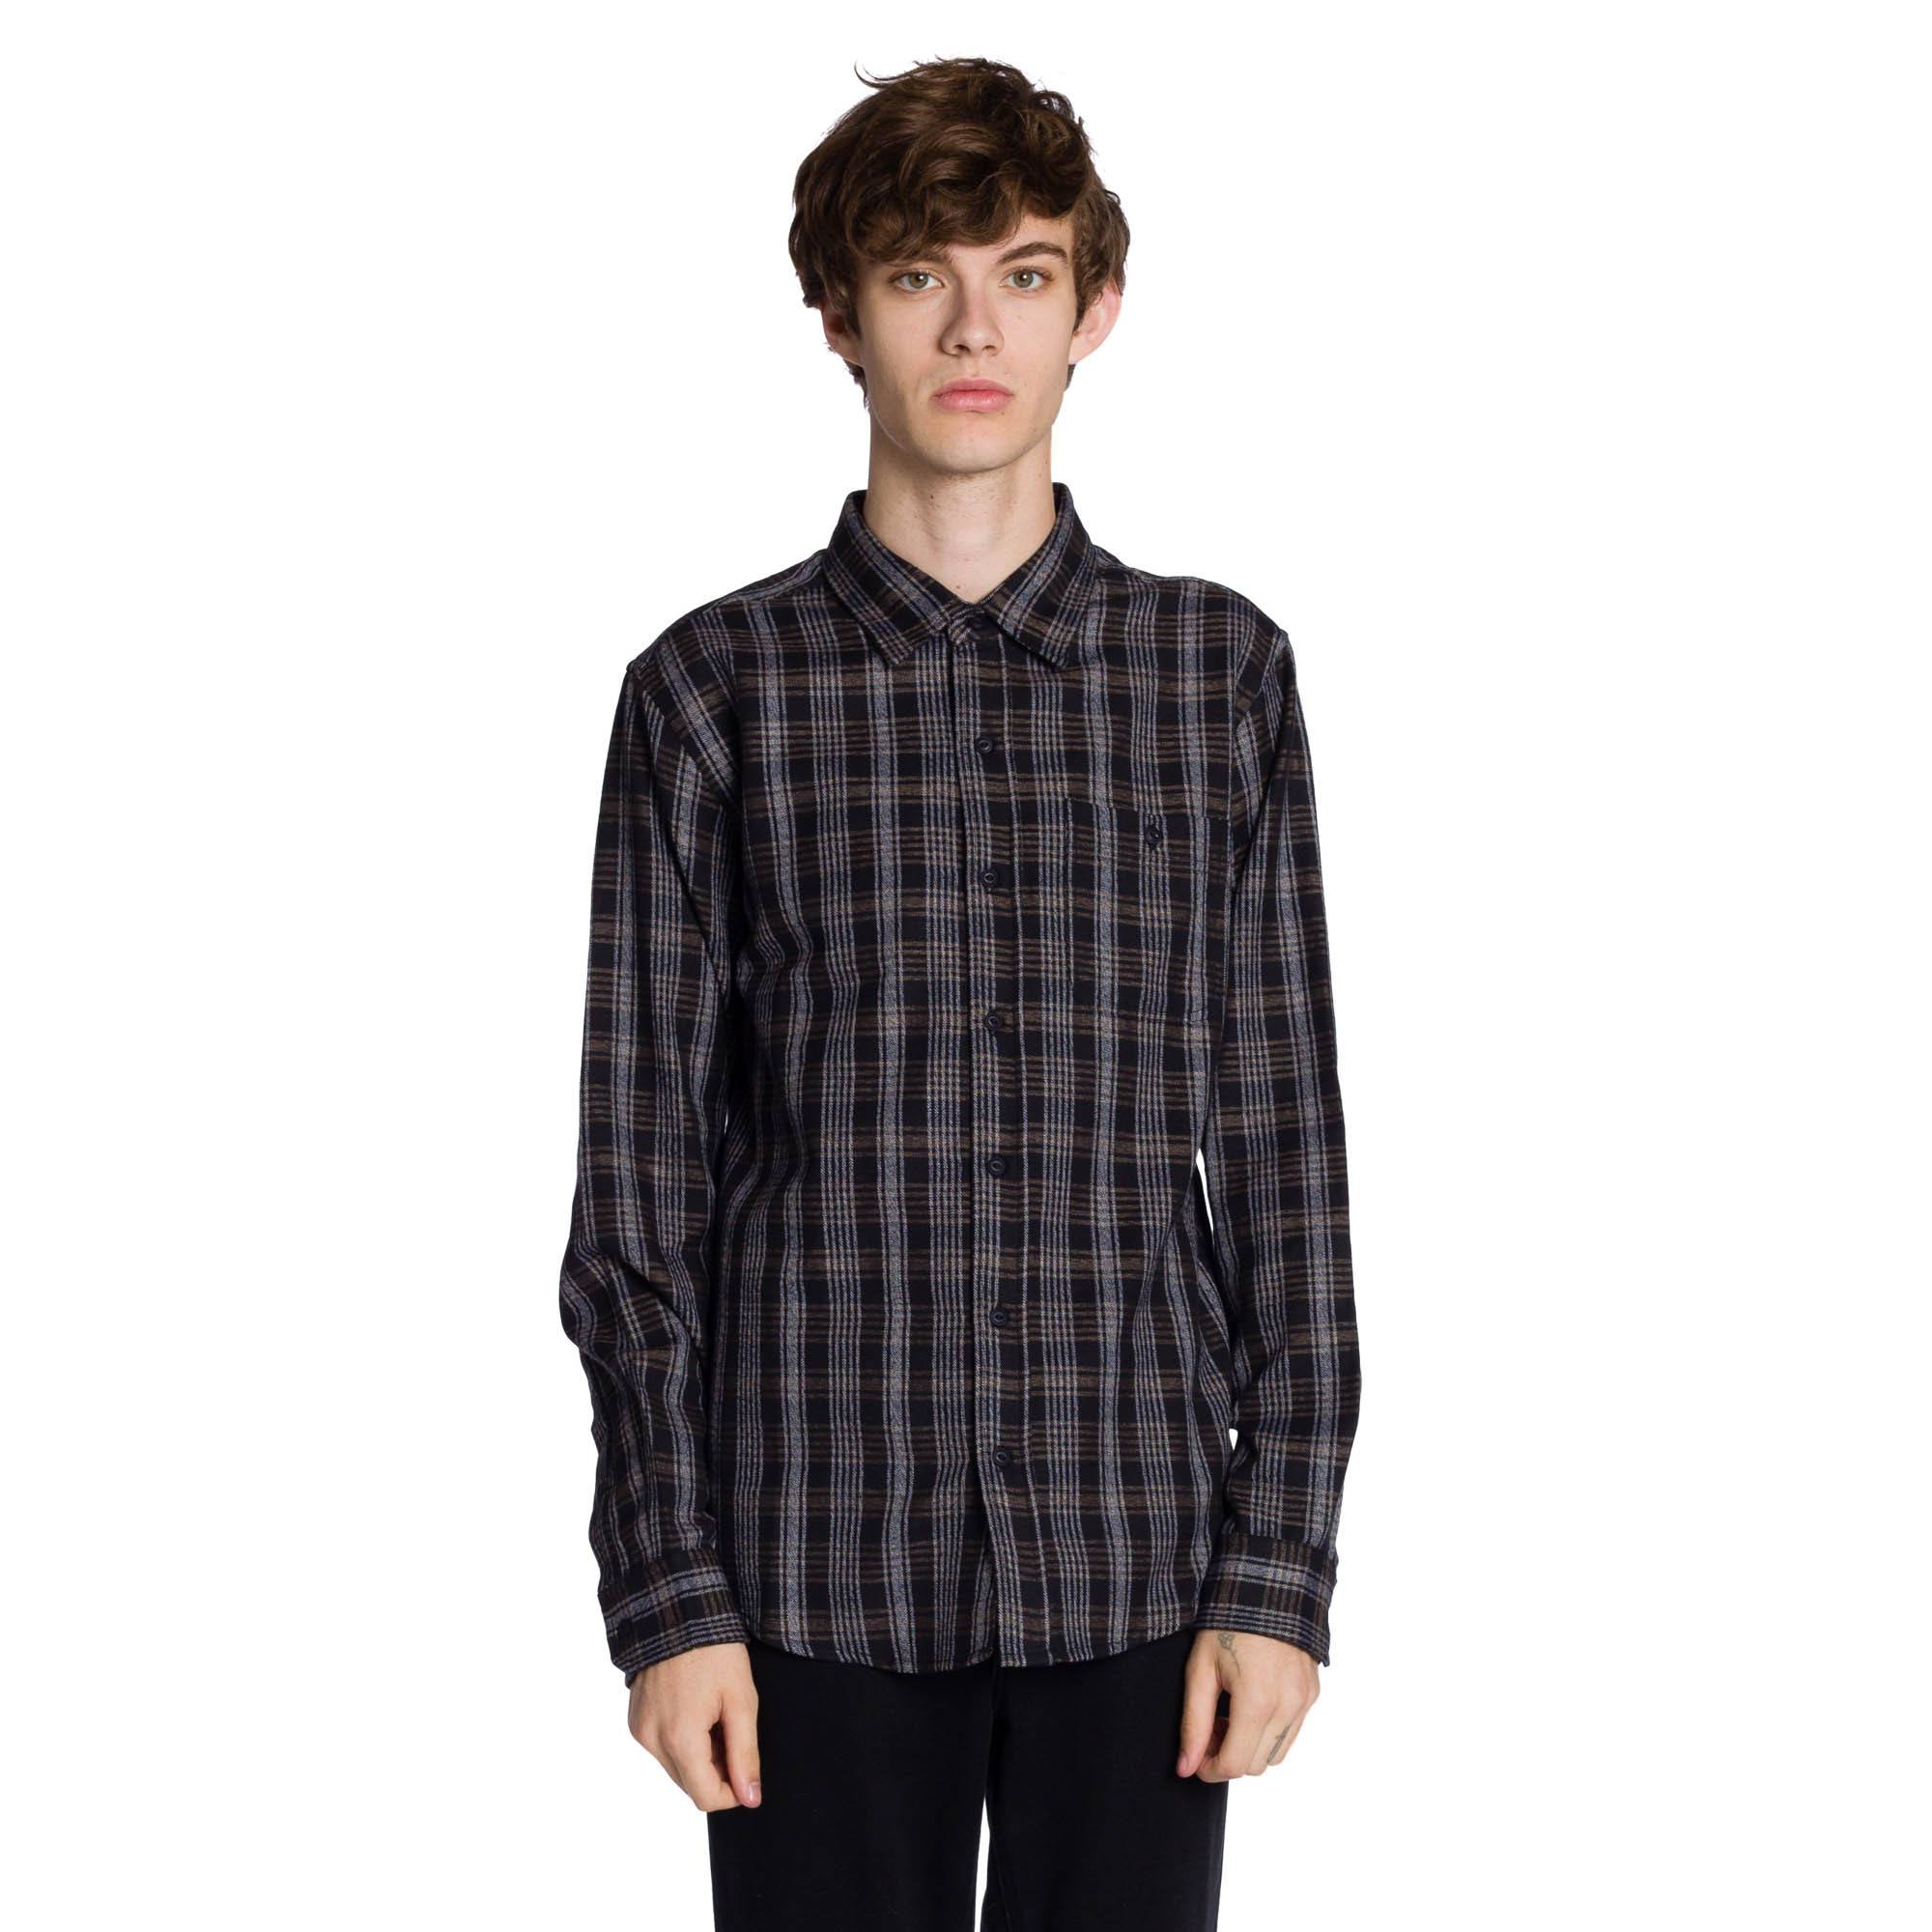 Vance Long Sleeve Shirt - Black